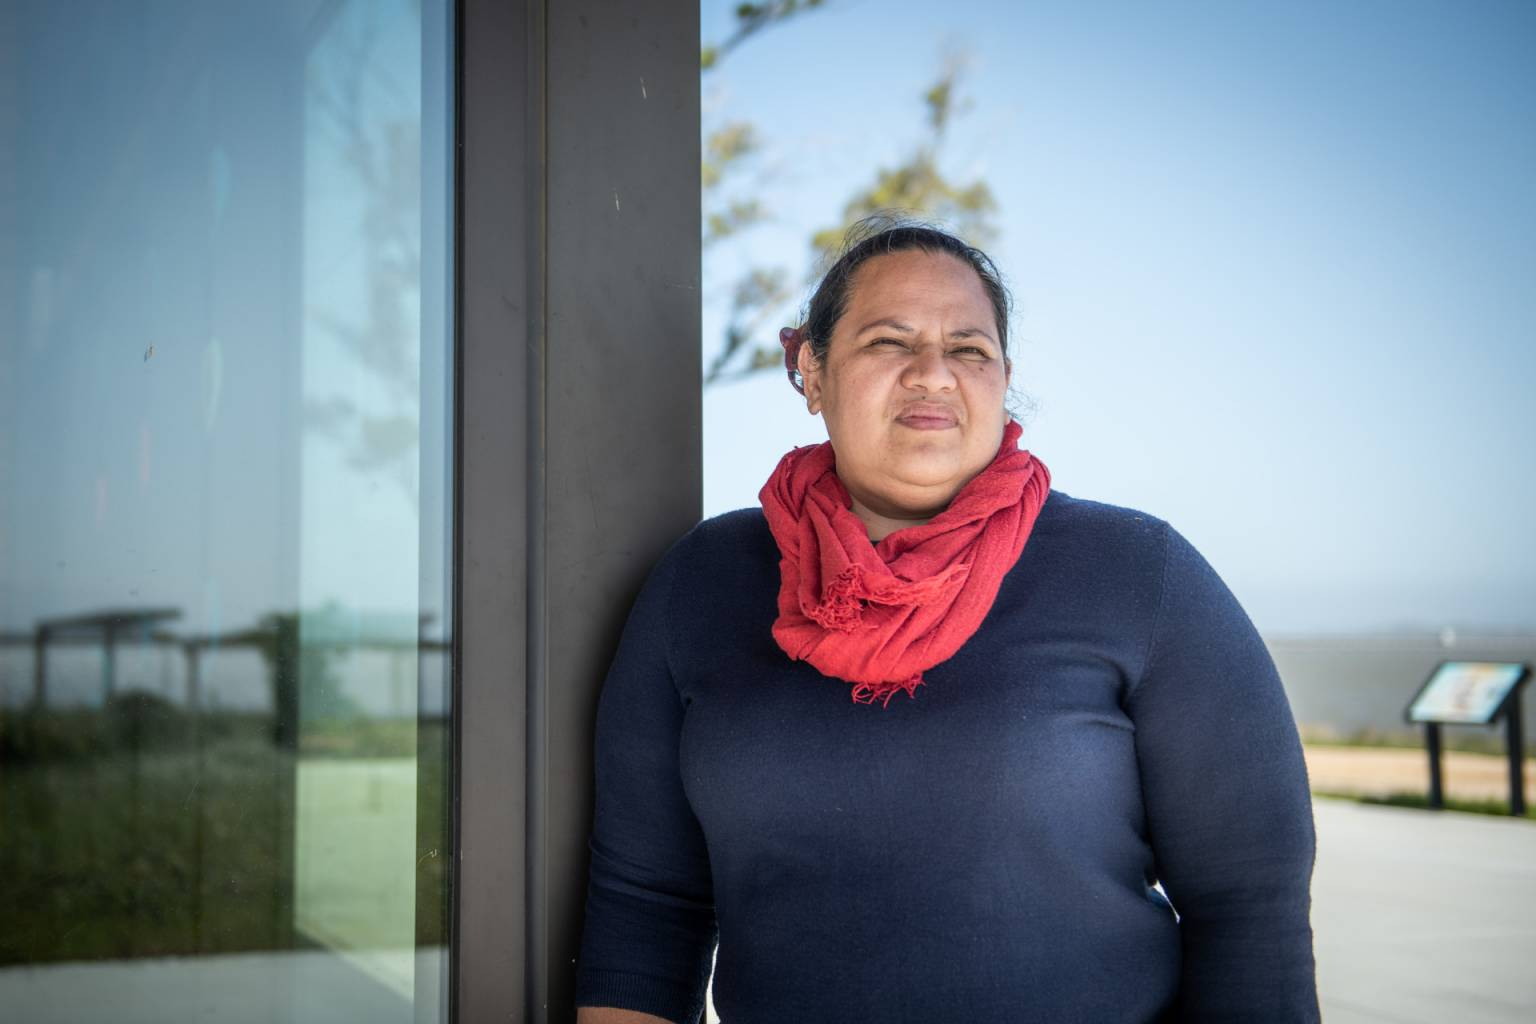 a samoan woman in a red scarf and navy shirt leaning against a glass door